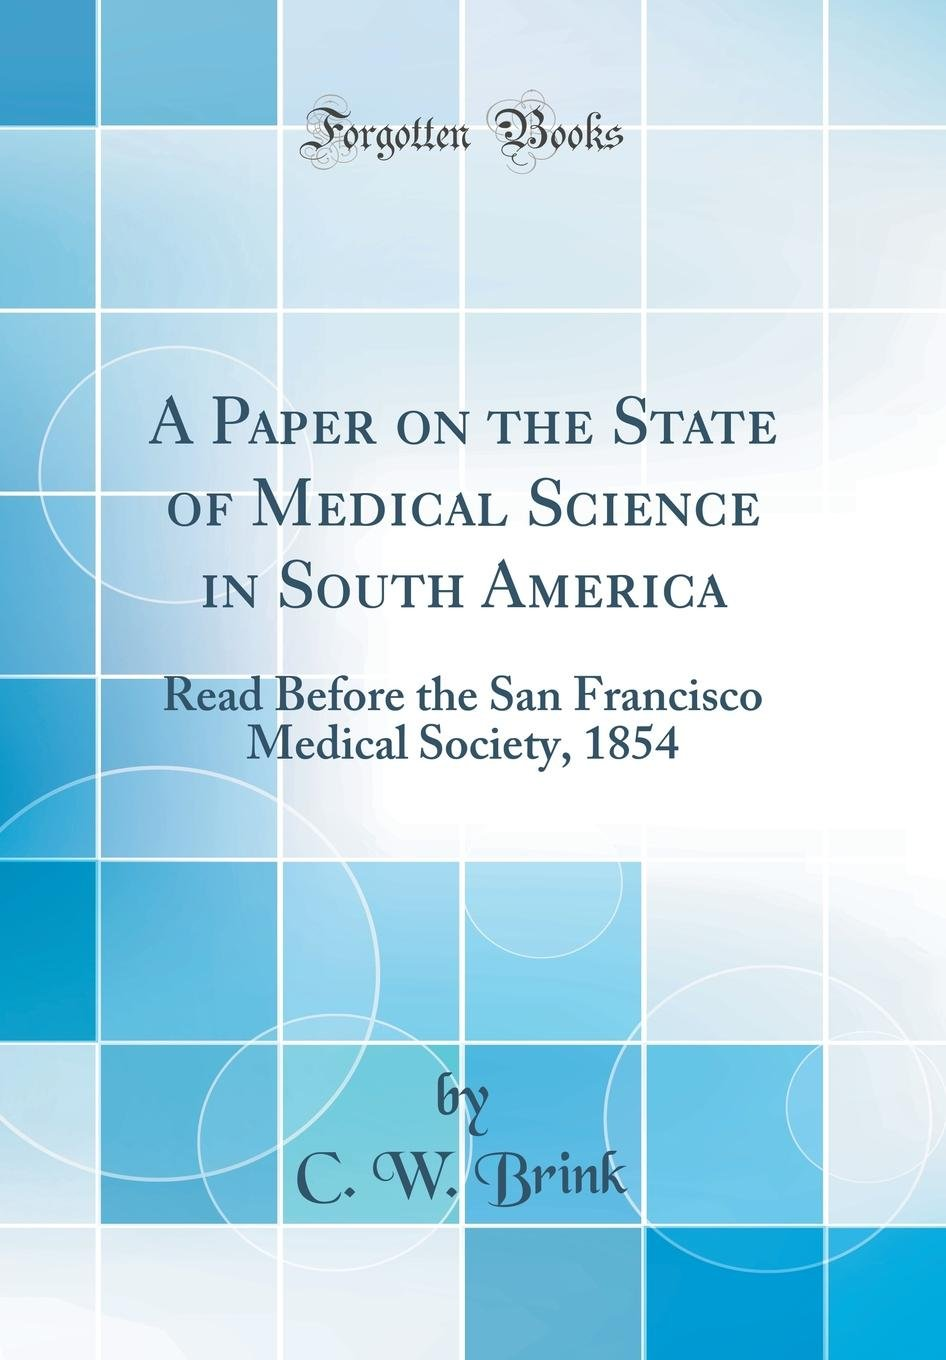 A Paper on the State of Medical Science in South America: Read Before the San Francisco Medical Society, 1854 (Classic Reprint) ebook